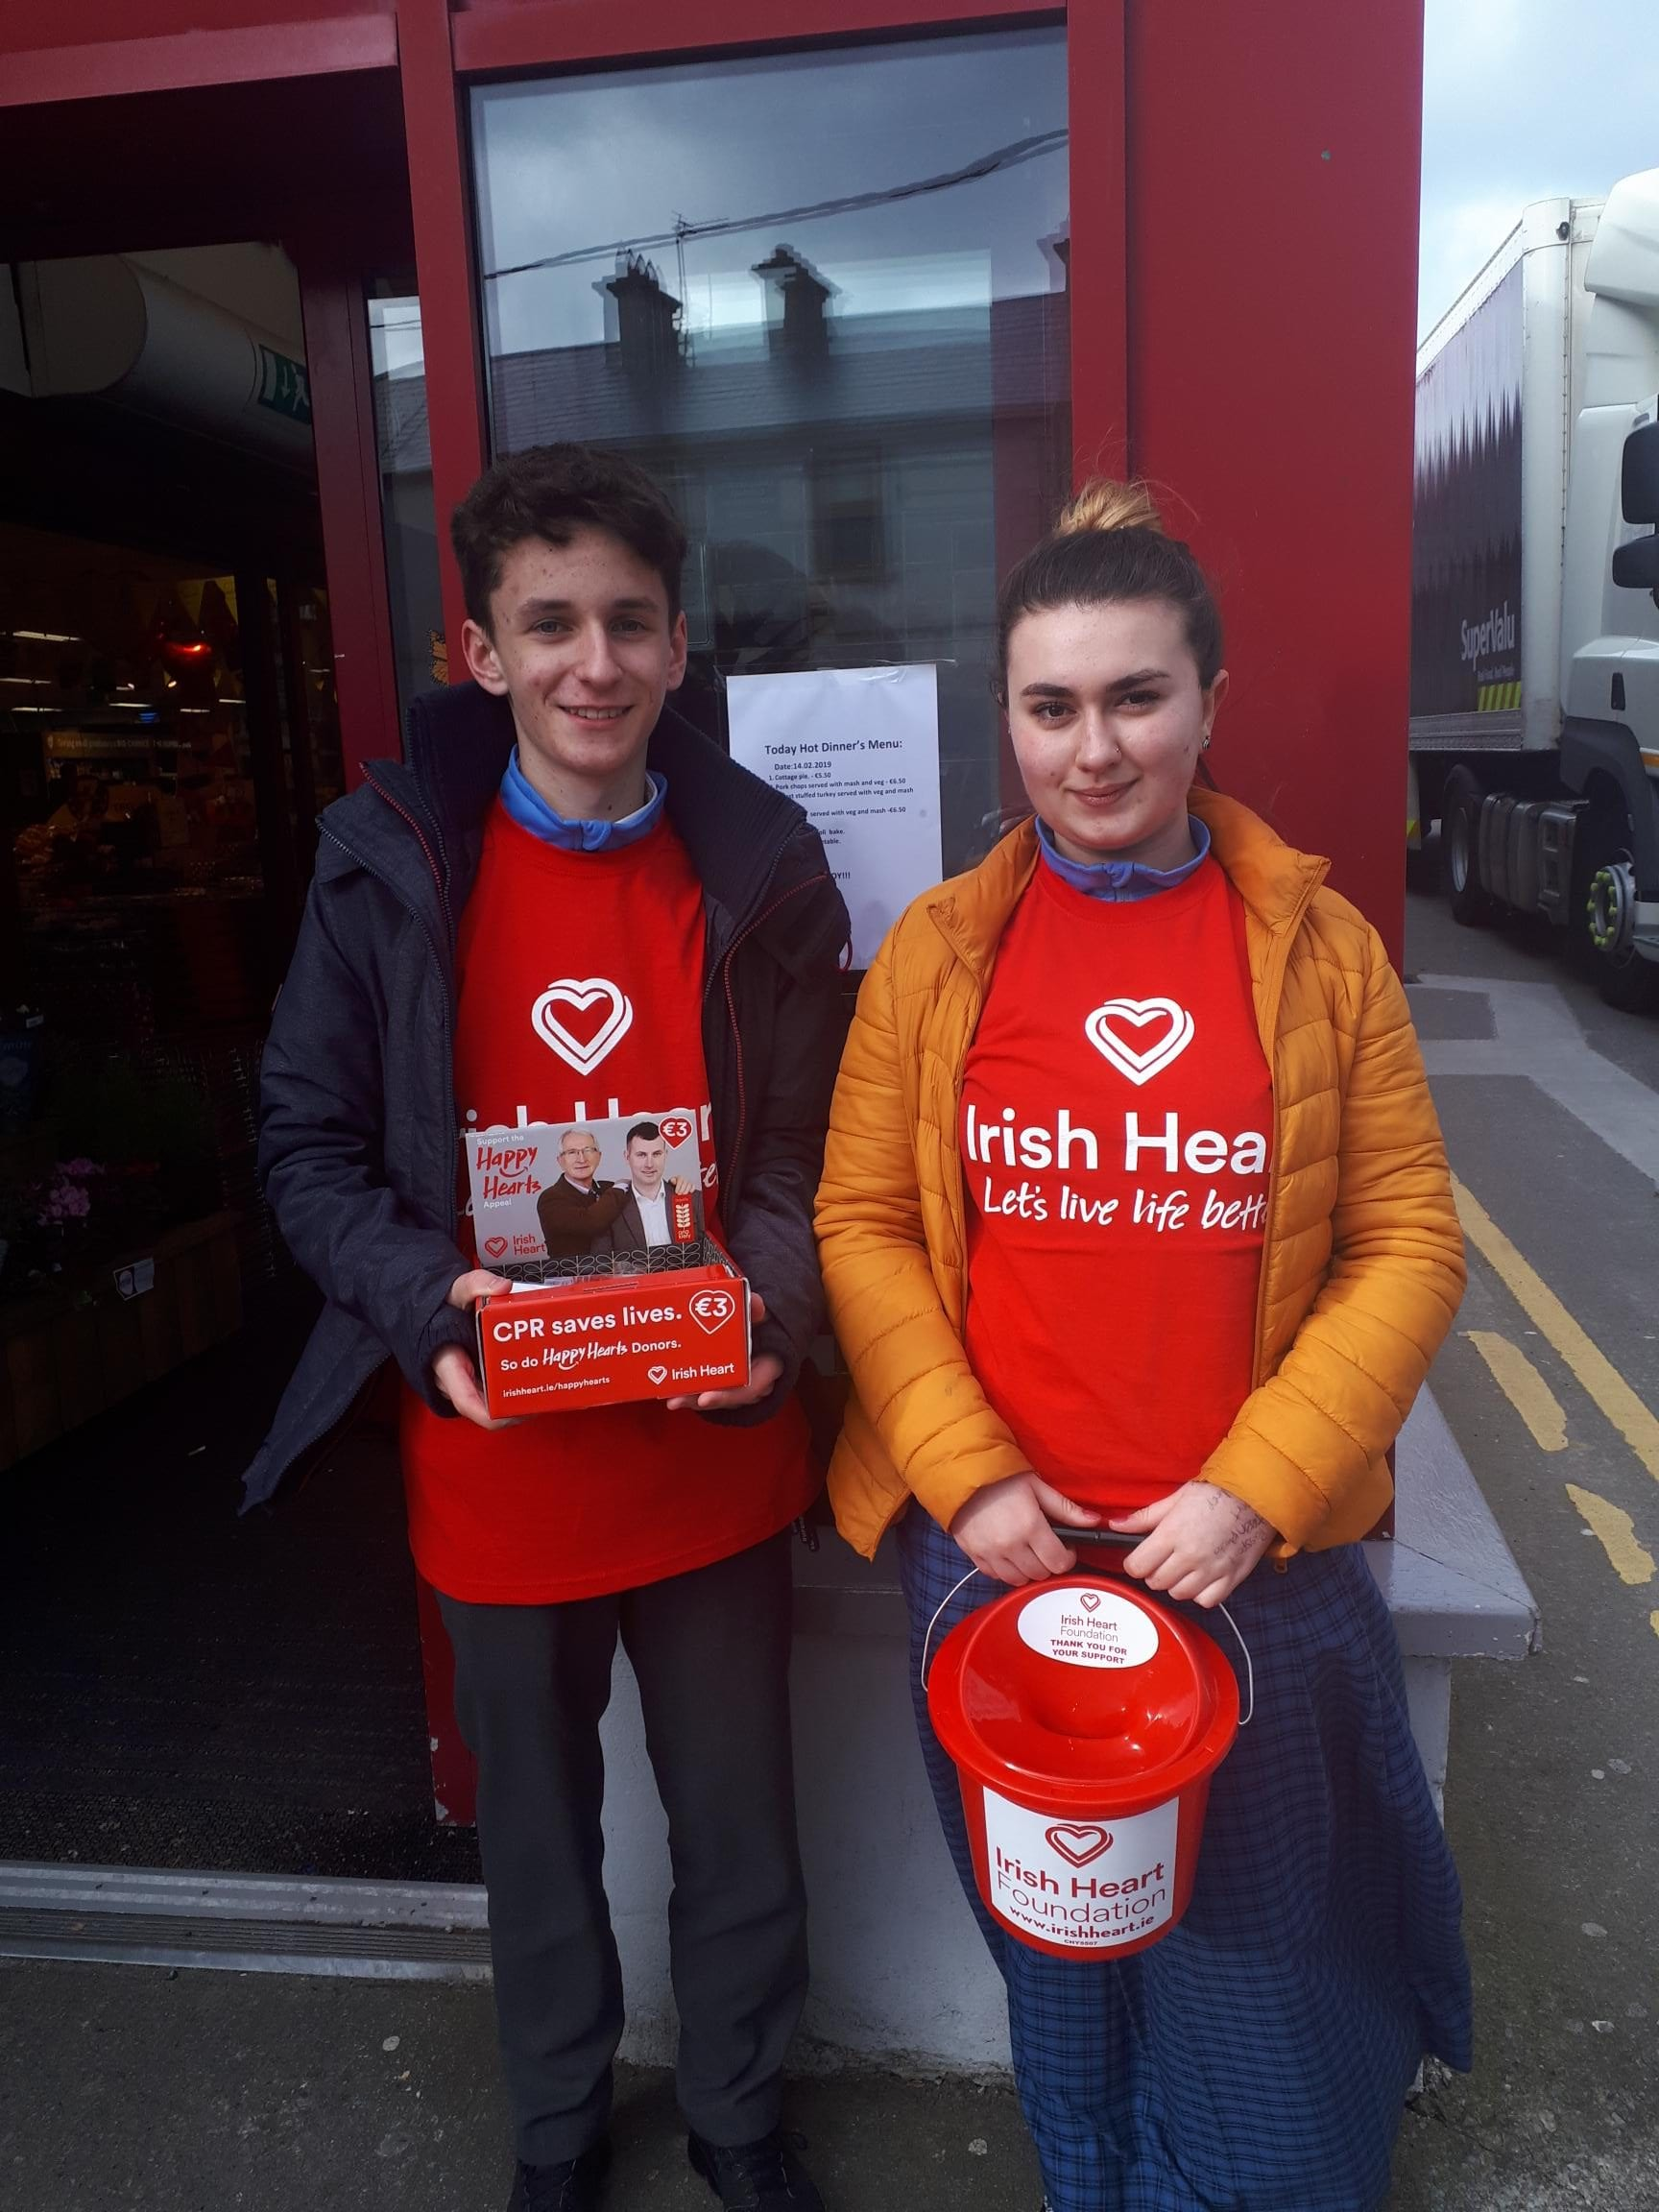 Conor Fox and Megan Romo fundraising for the Irish Heart Foundation